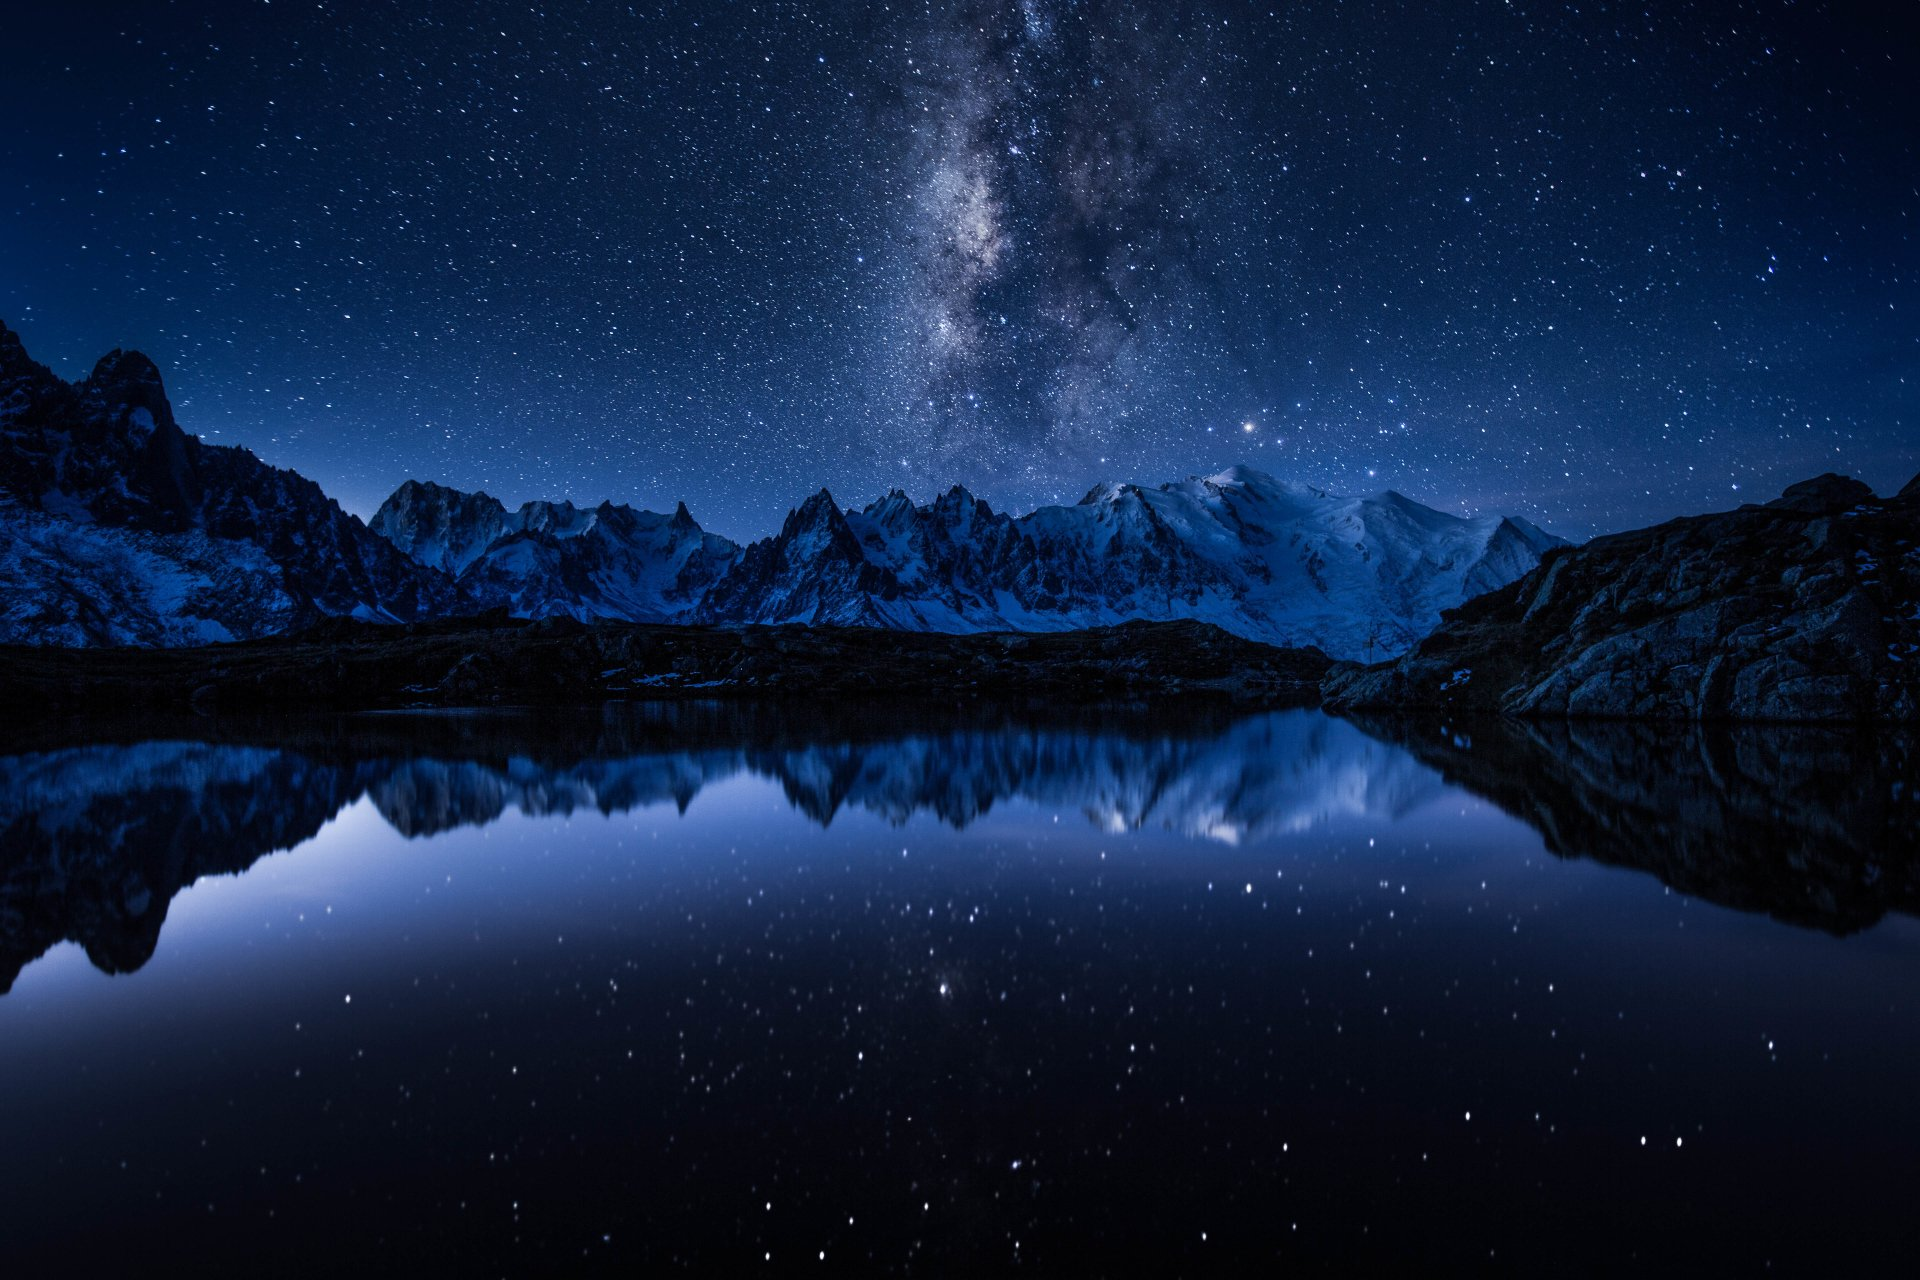 Earth - Reflection  Nature Mountain Sky Night Stars Milky Way Landscape Water Wallpaper